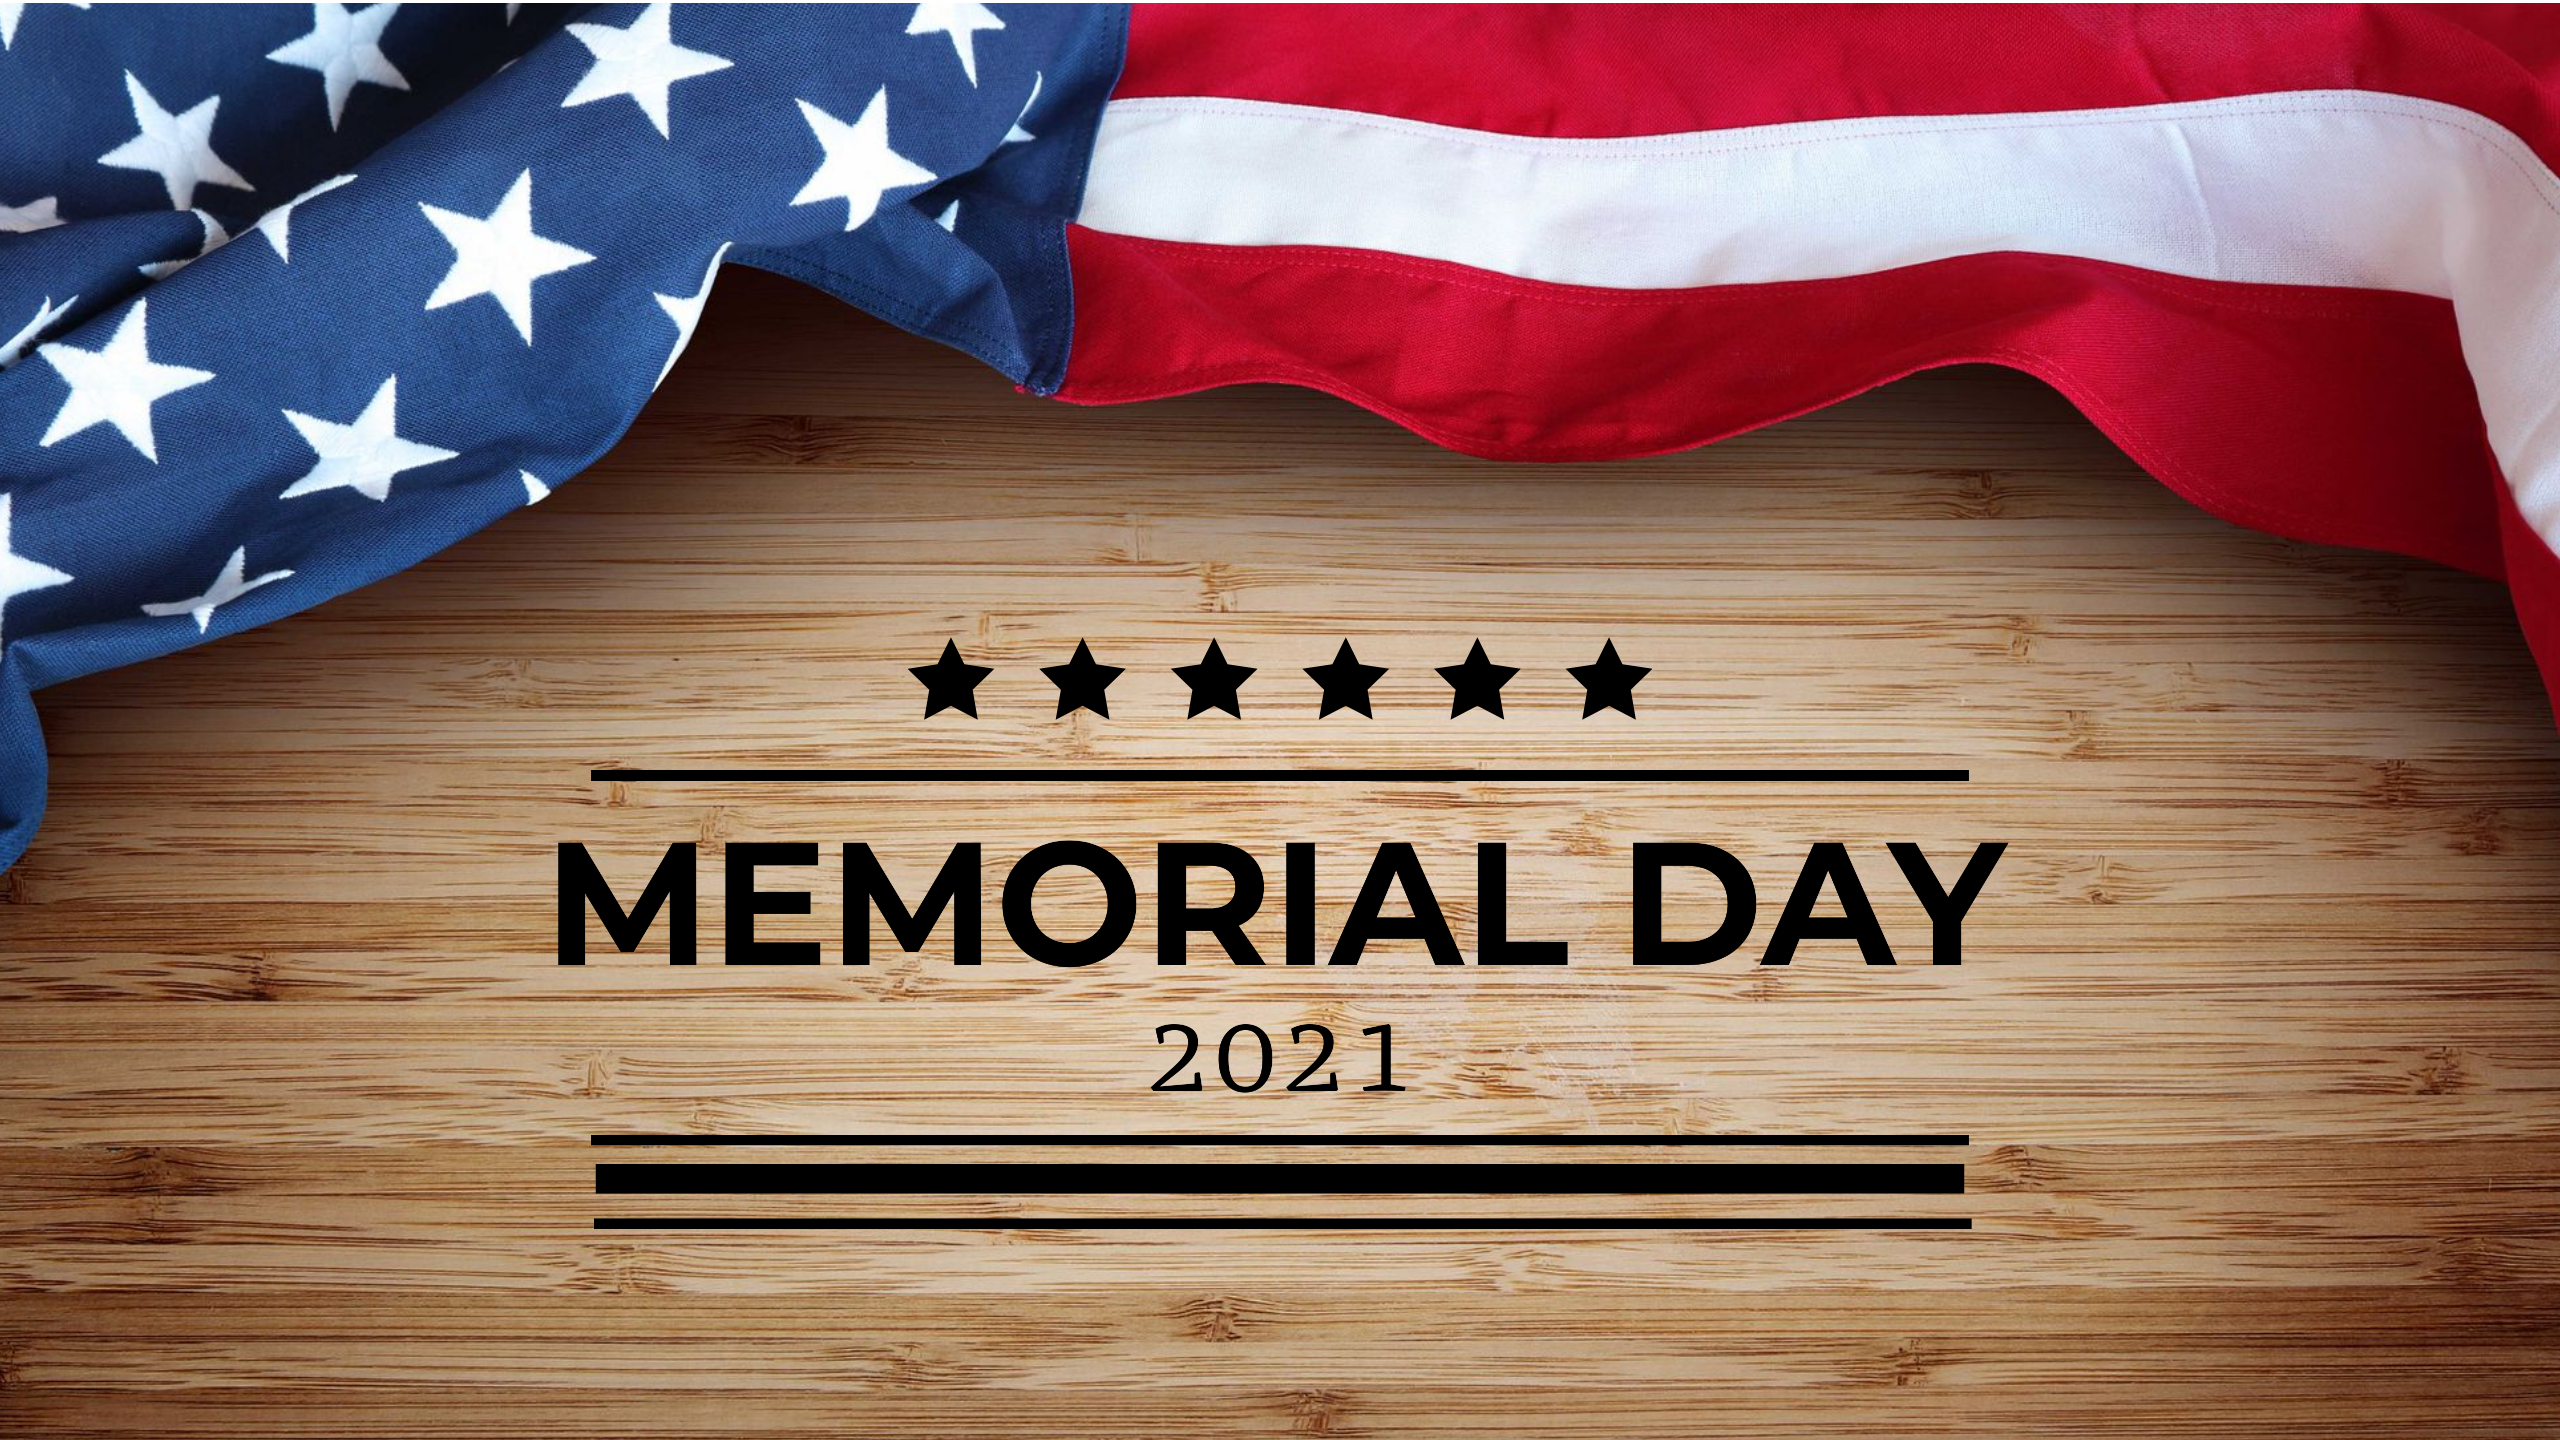 Memorial Day Place Holder